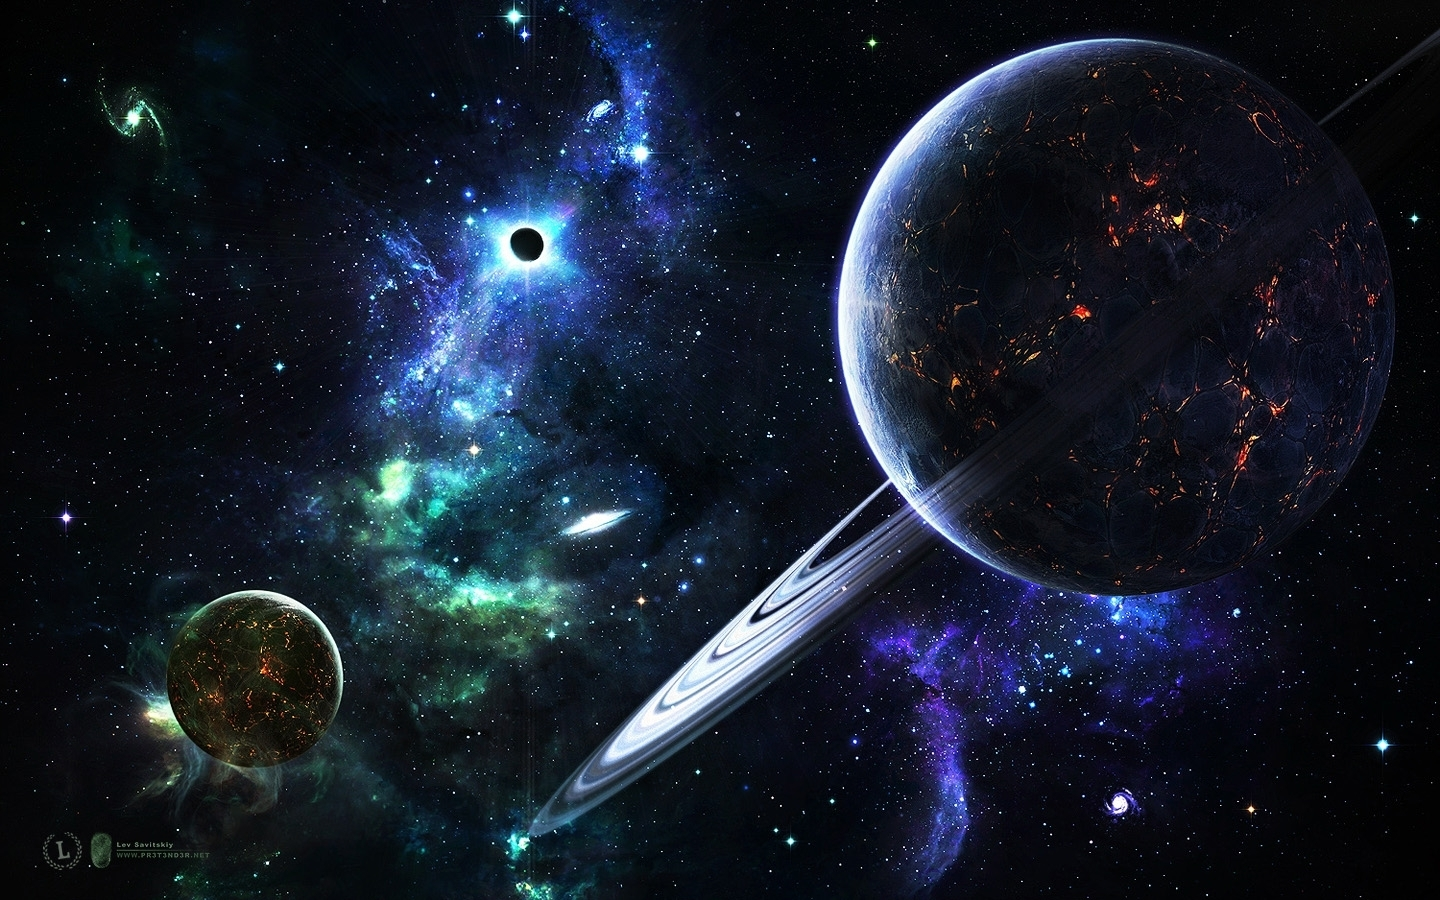 Space Art Wallpaper - Space Wallpaper (7076682) - Fanpop